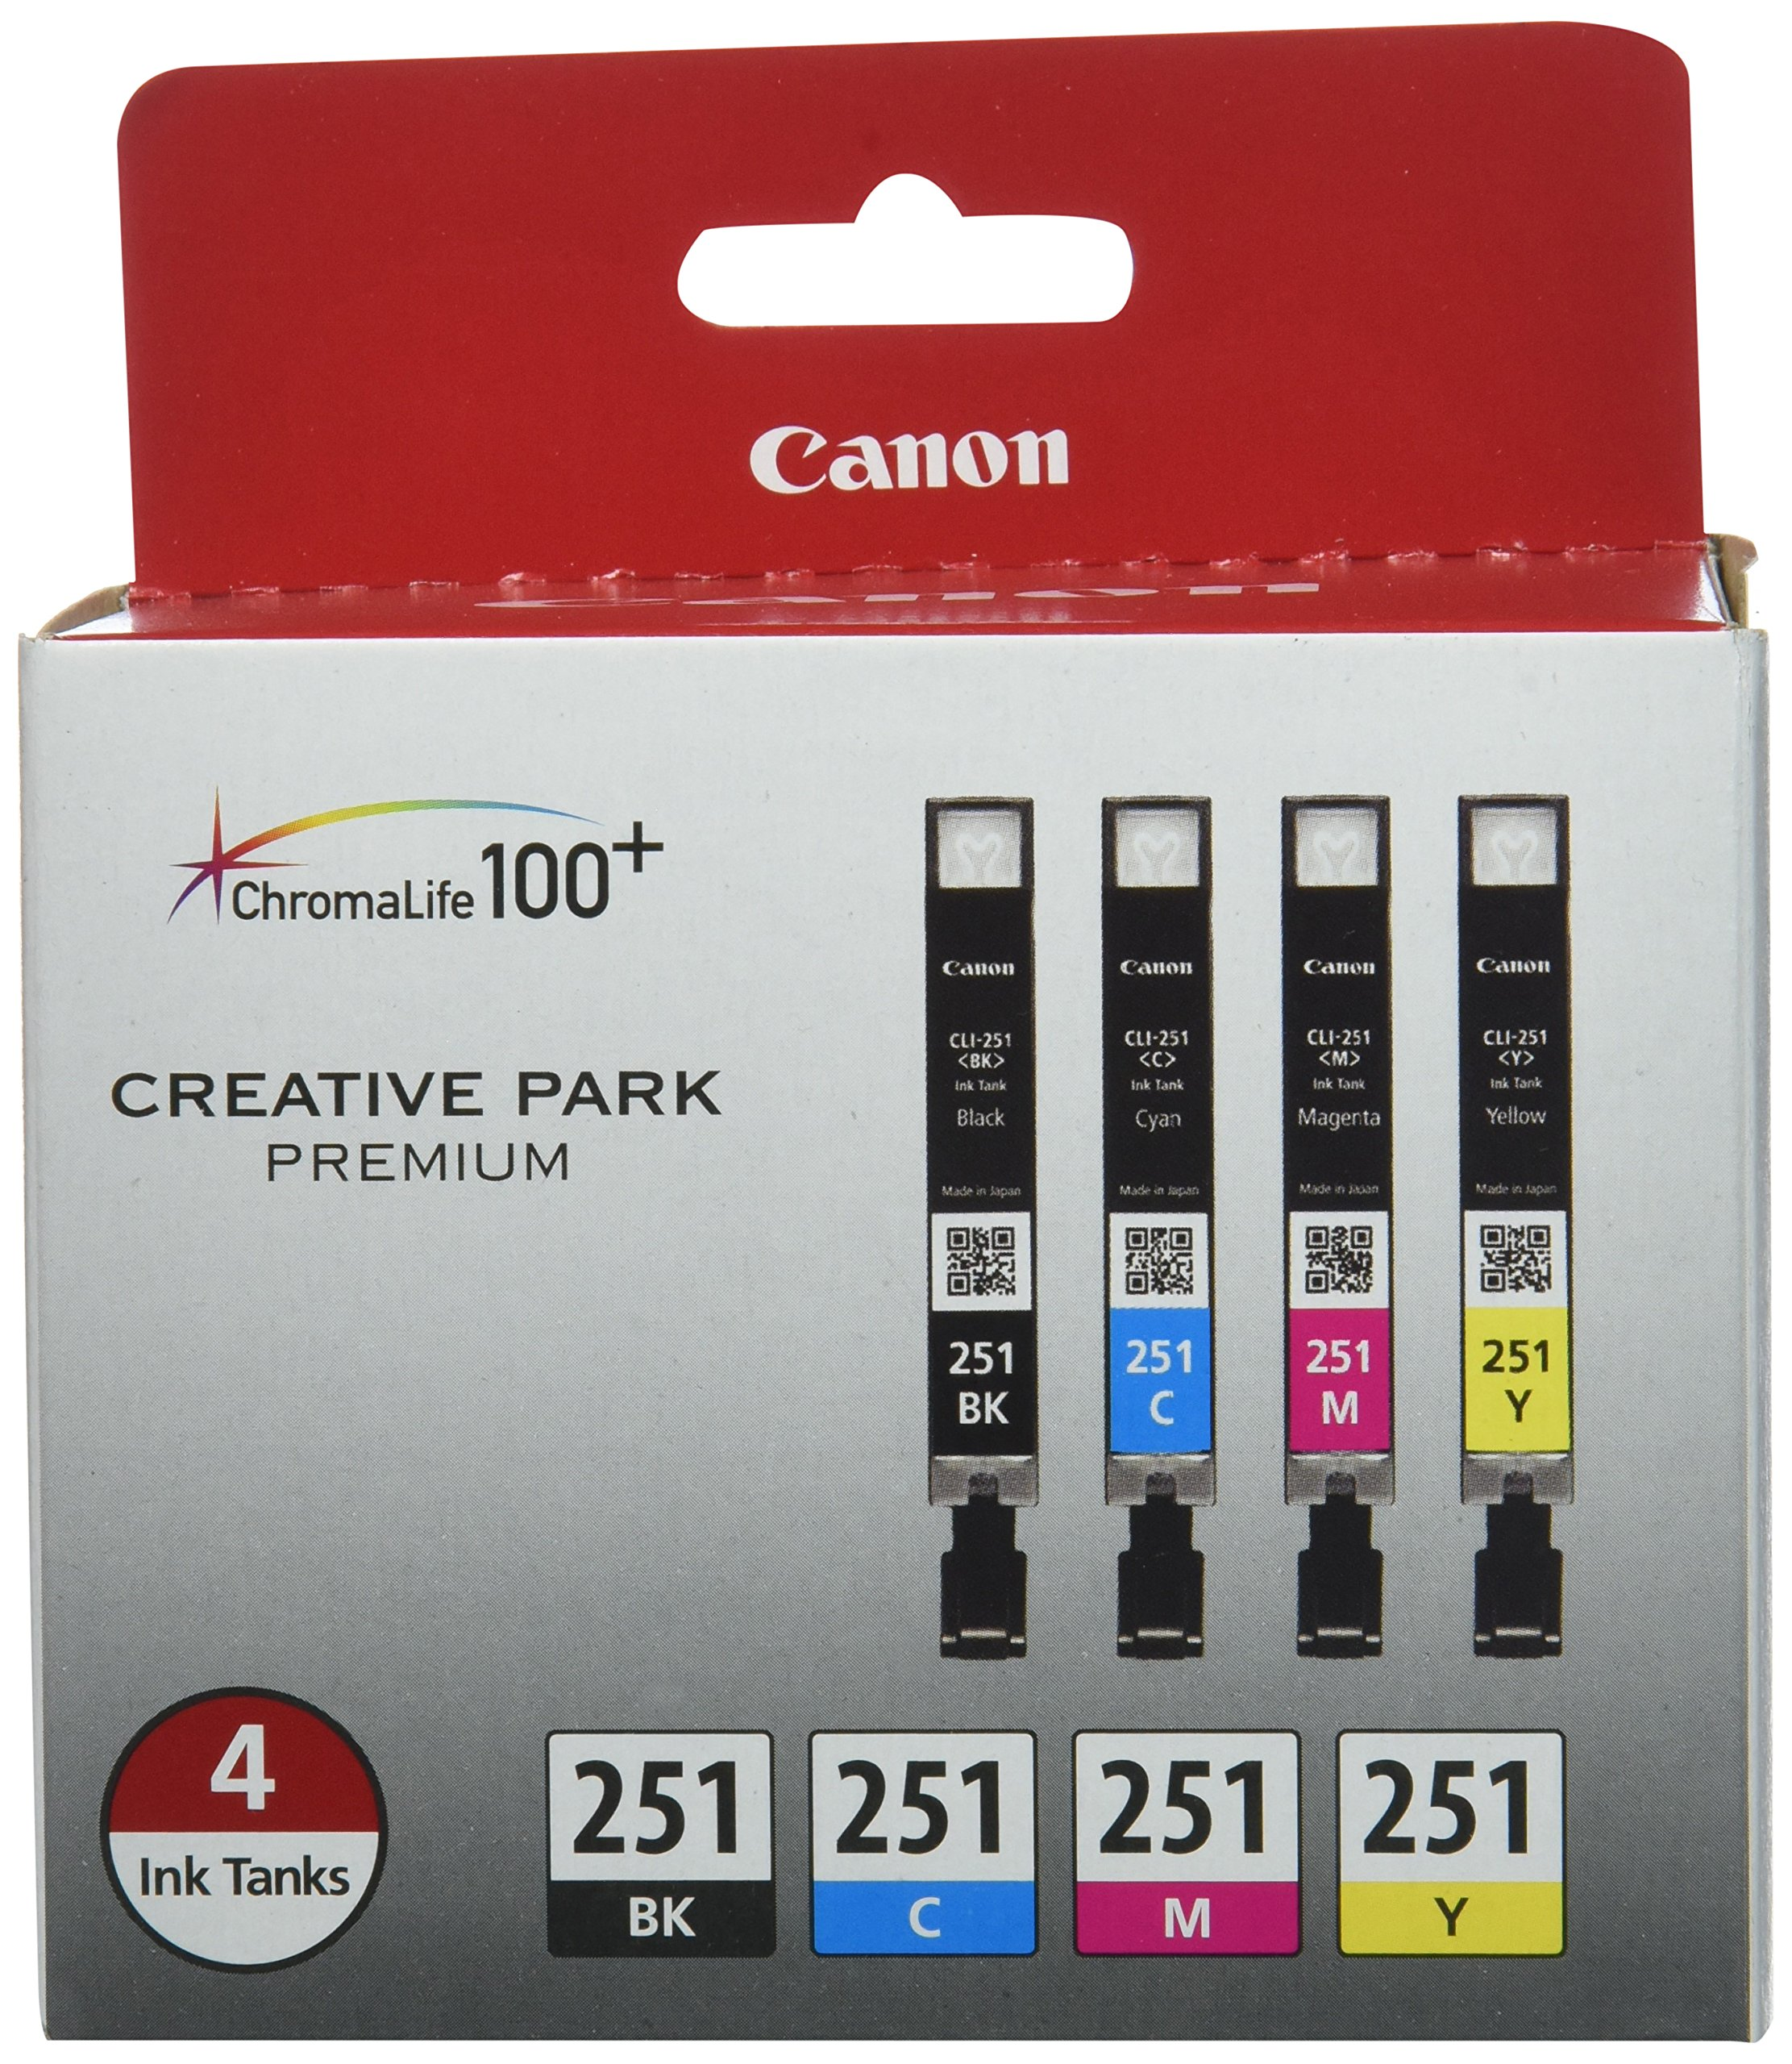 Canon CLI-251 4-Color Pack, Black,Cyan, Magenta, Yellow, Compatible to MX922, iP8720, iX6820,MG7520,MG6620,MG5620,MG7120,MG6420,MG5520 and MG6320